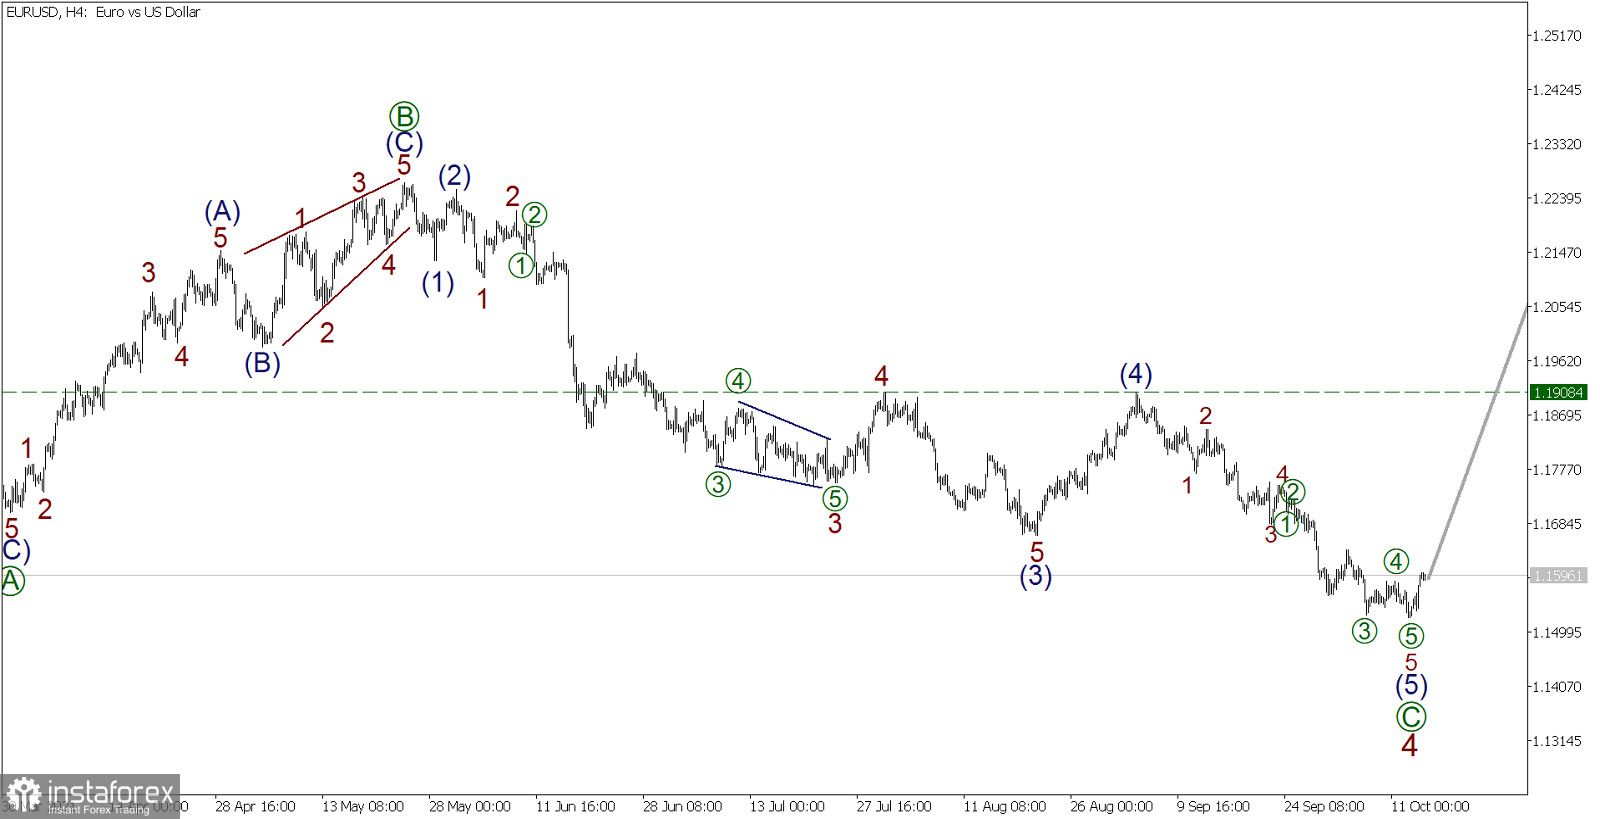 Wave analysis for EUR/USD on October 14, 2021